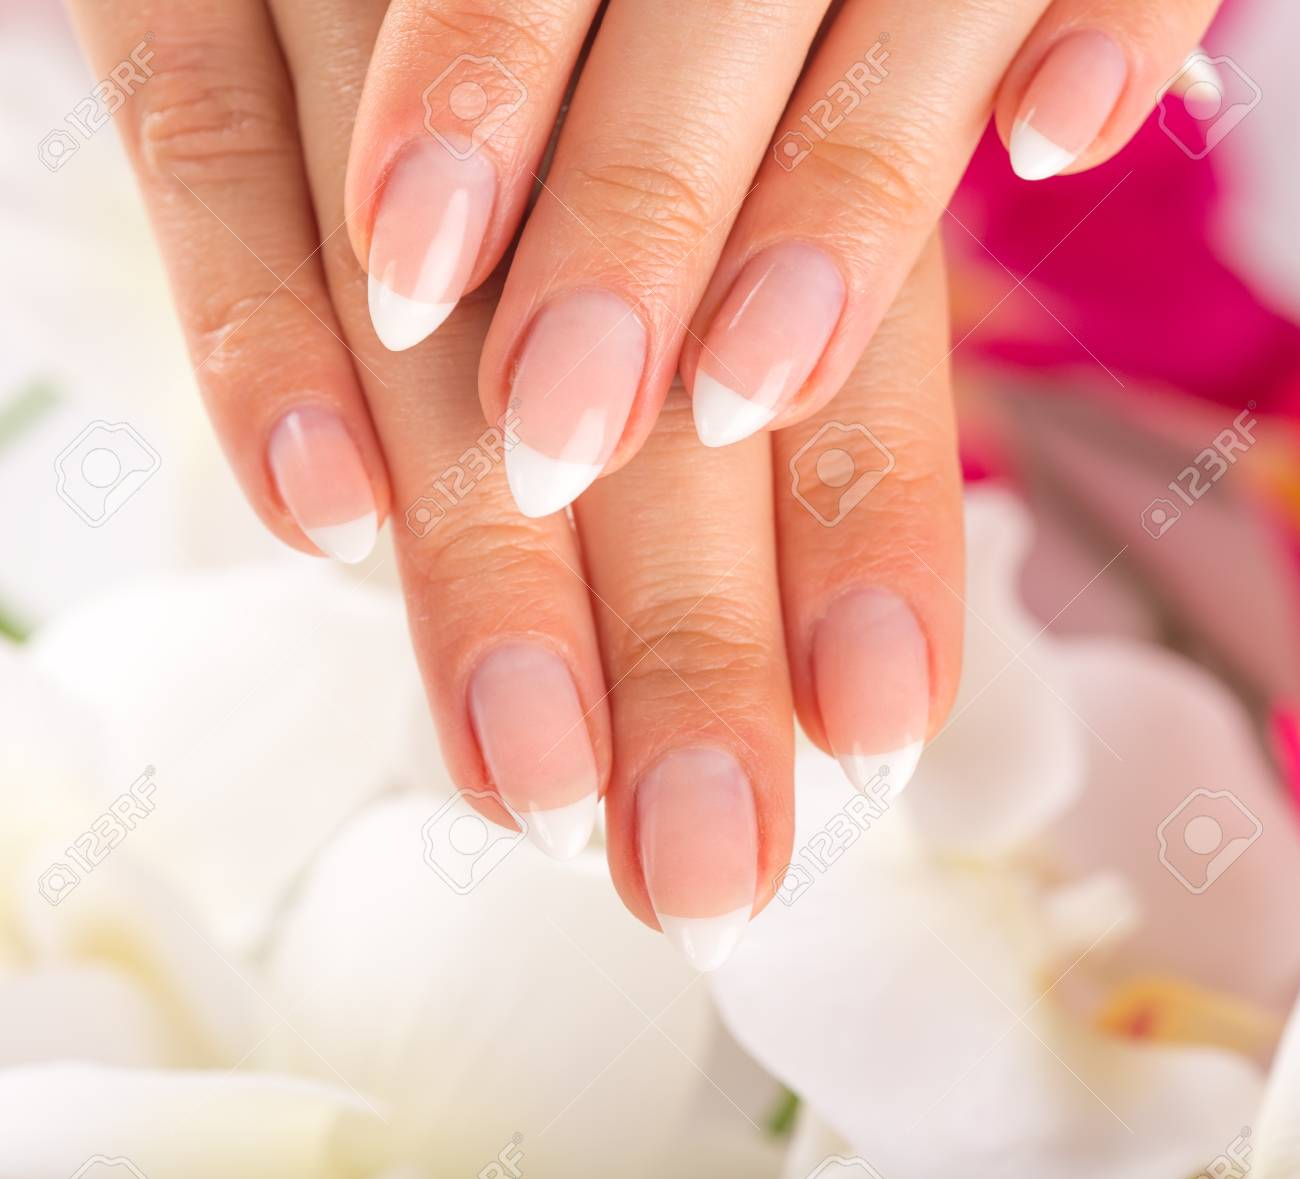 Beautiful Woman\'s Nails, French Manicure, Close-up. Stock Photo ...